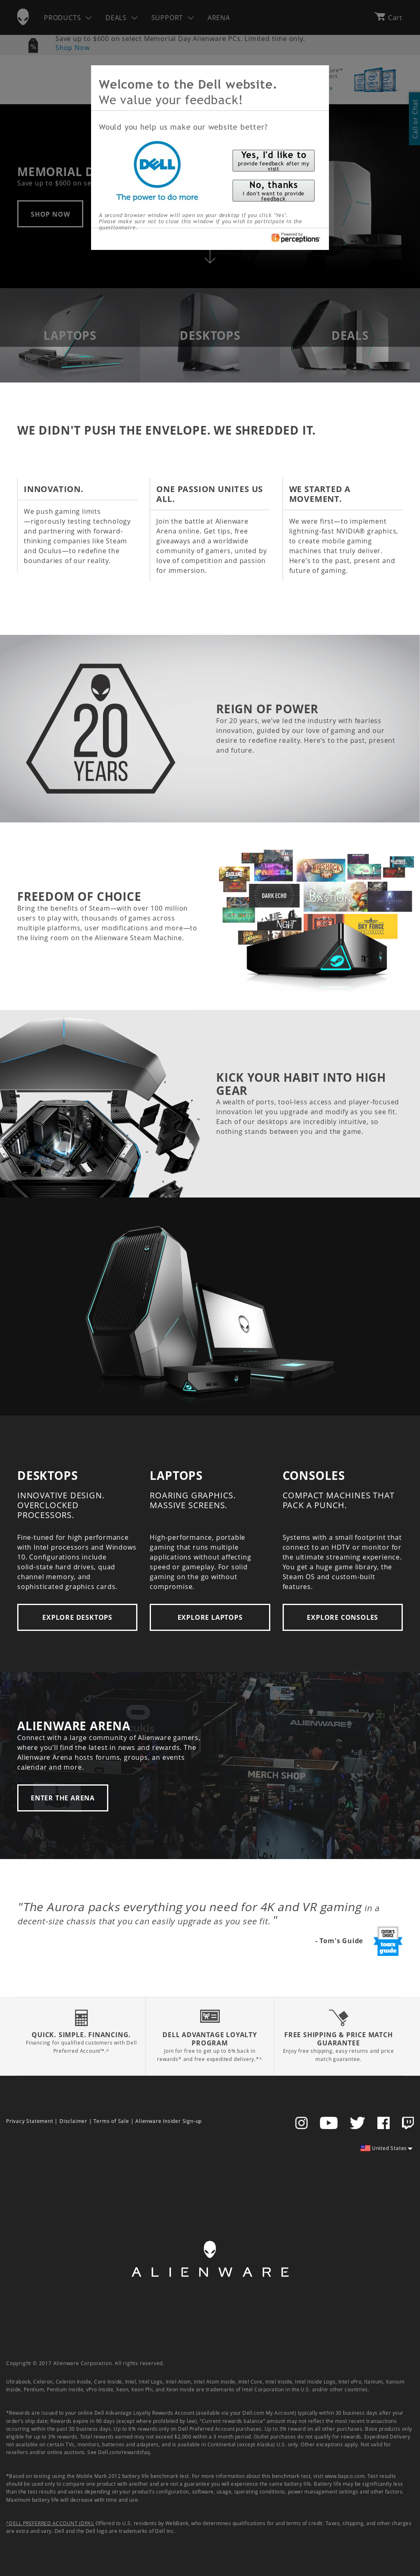 Alienware Competitors, Revenue and Employees - Owler Company